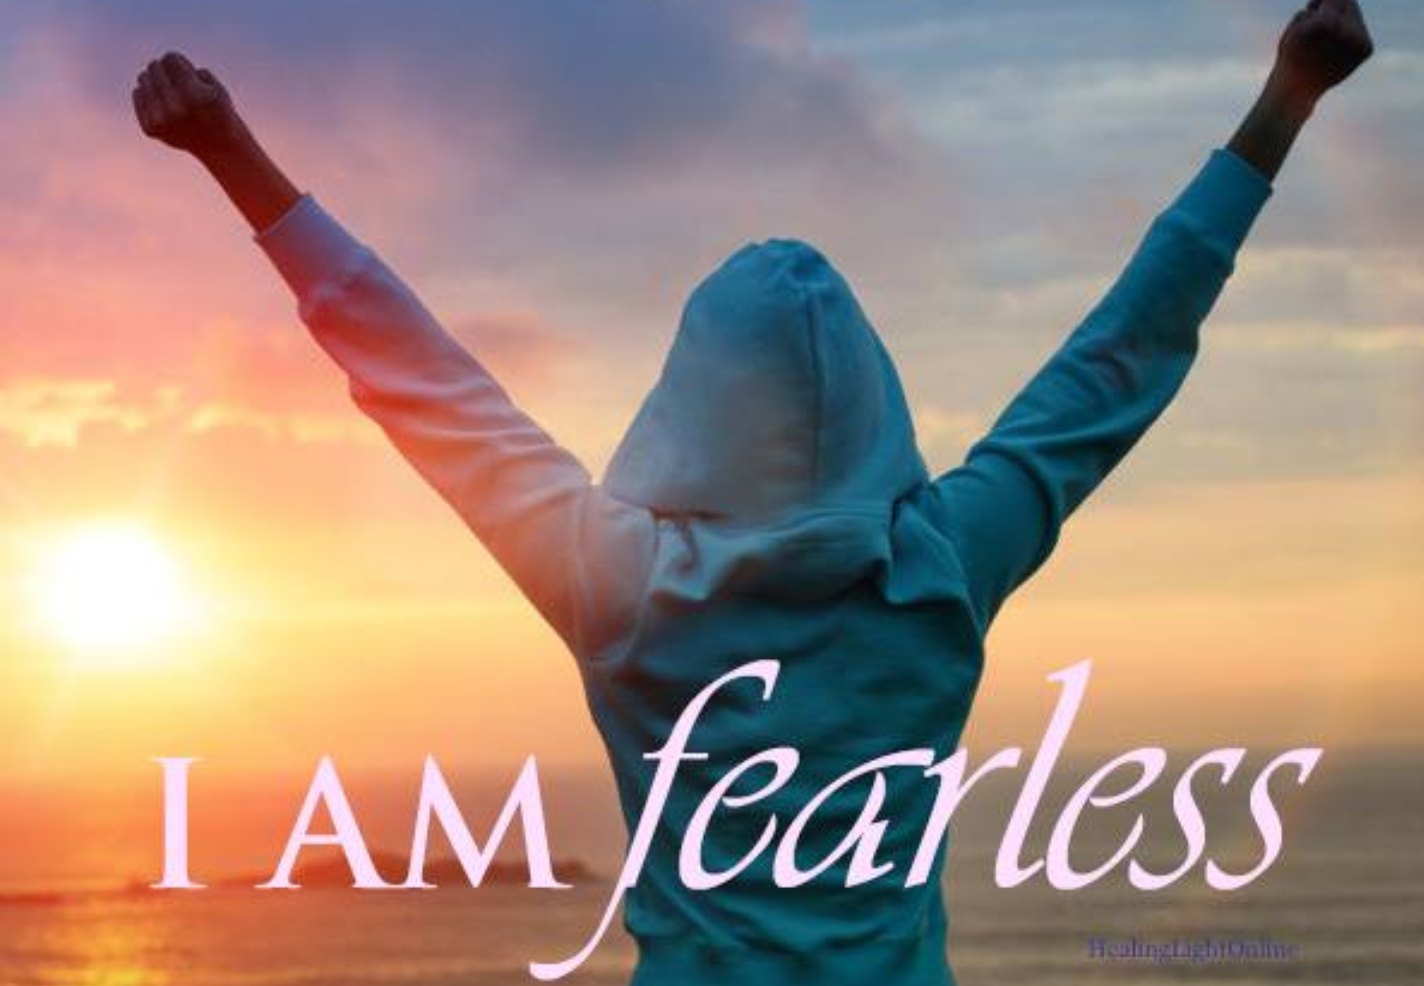 I Am Fearless image